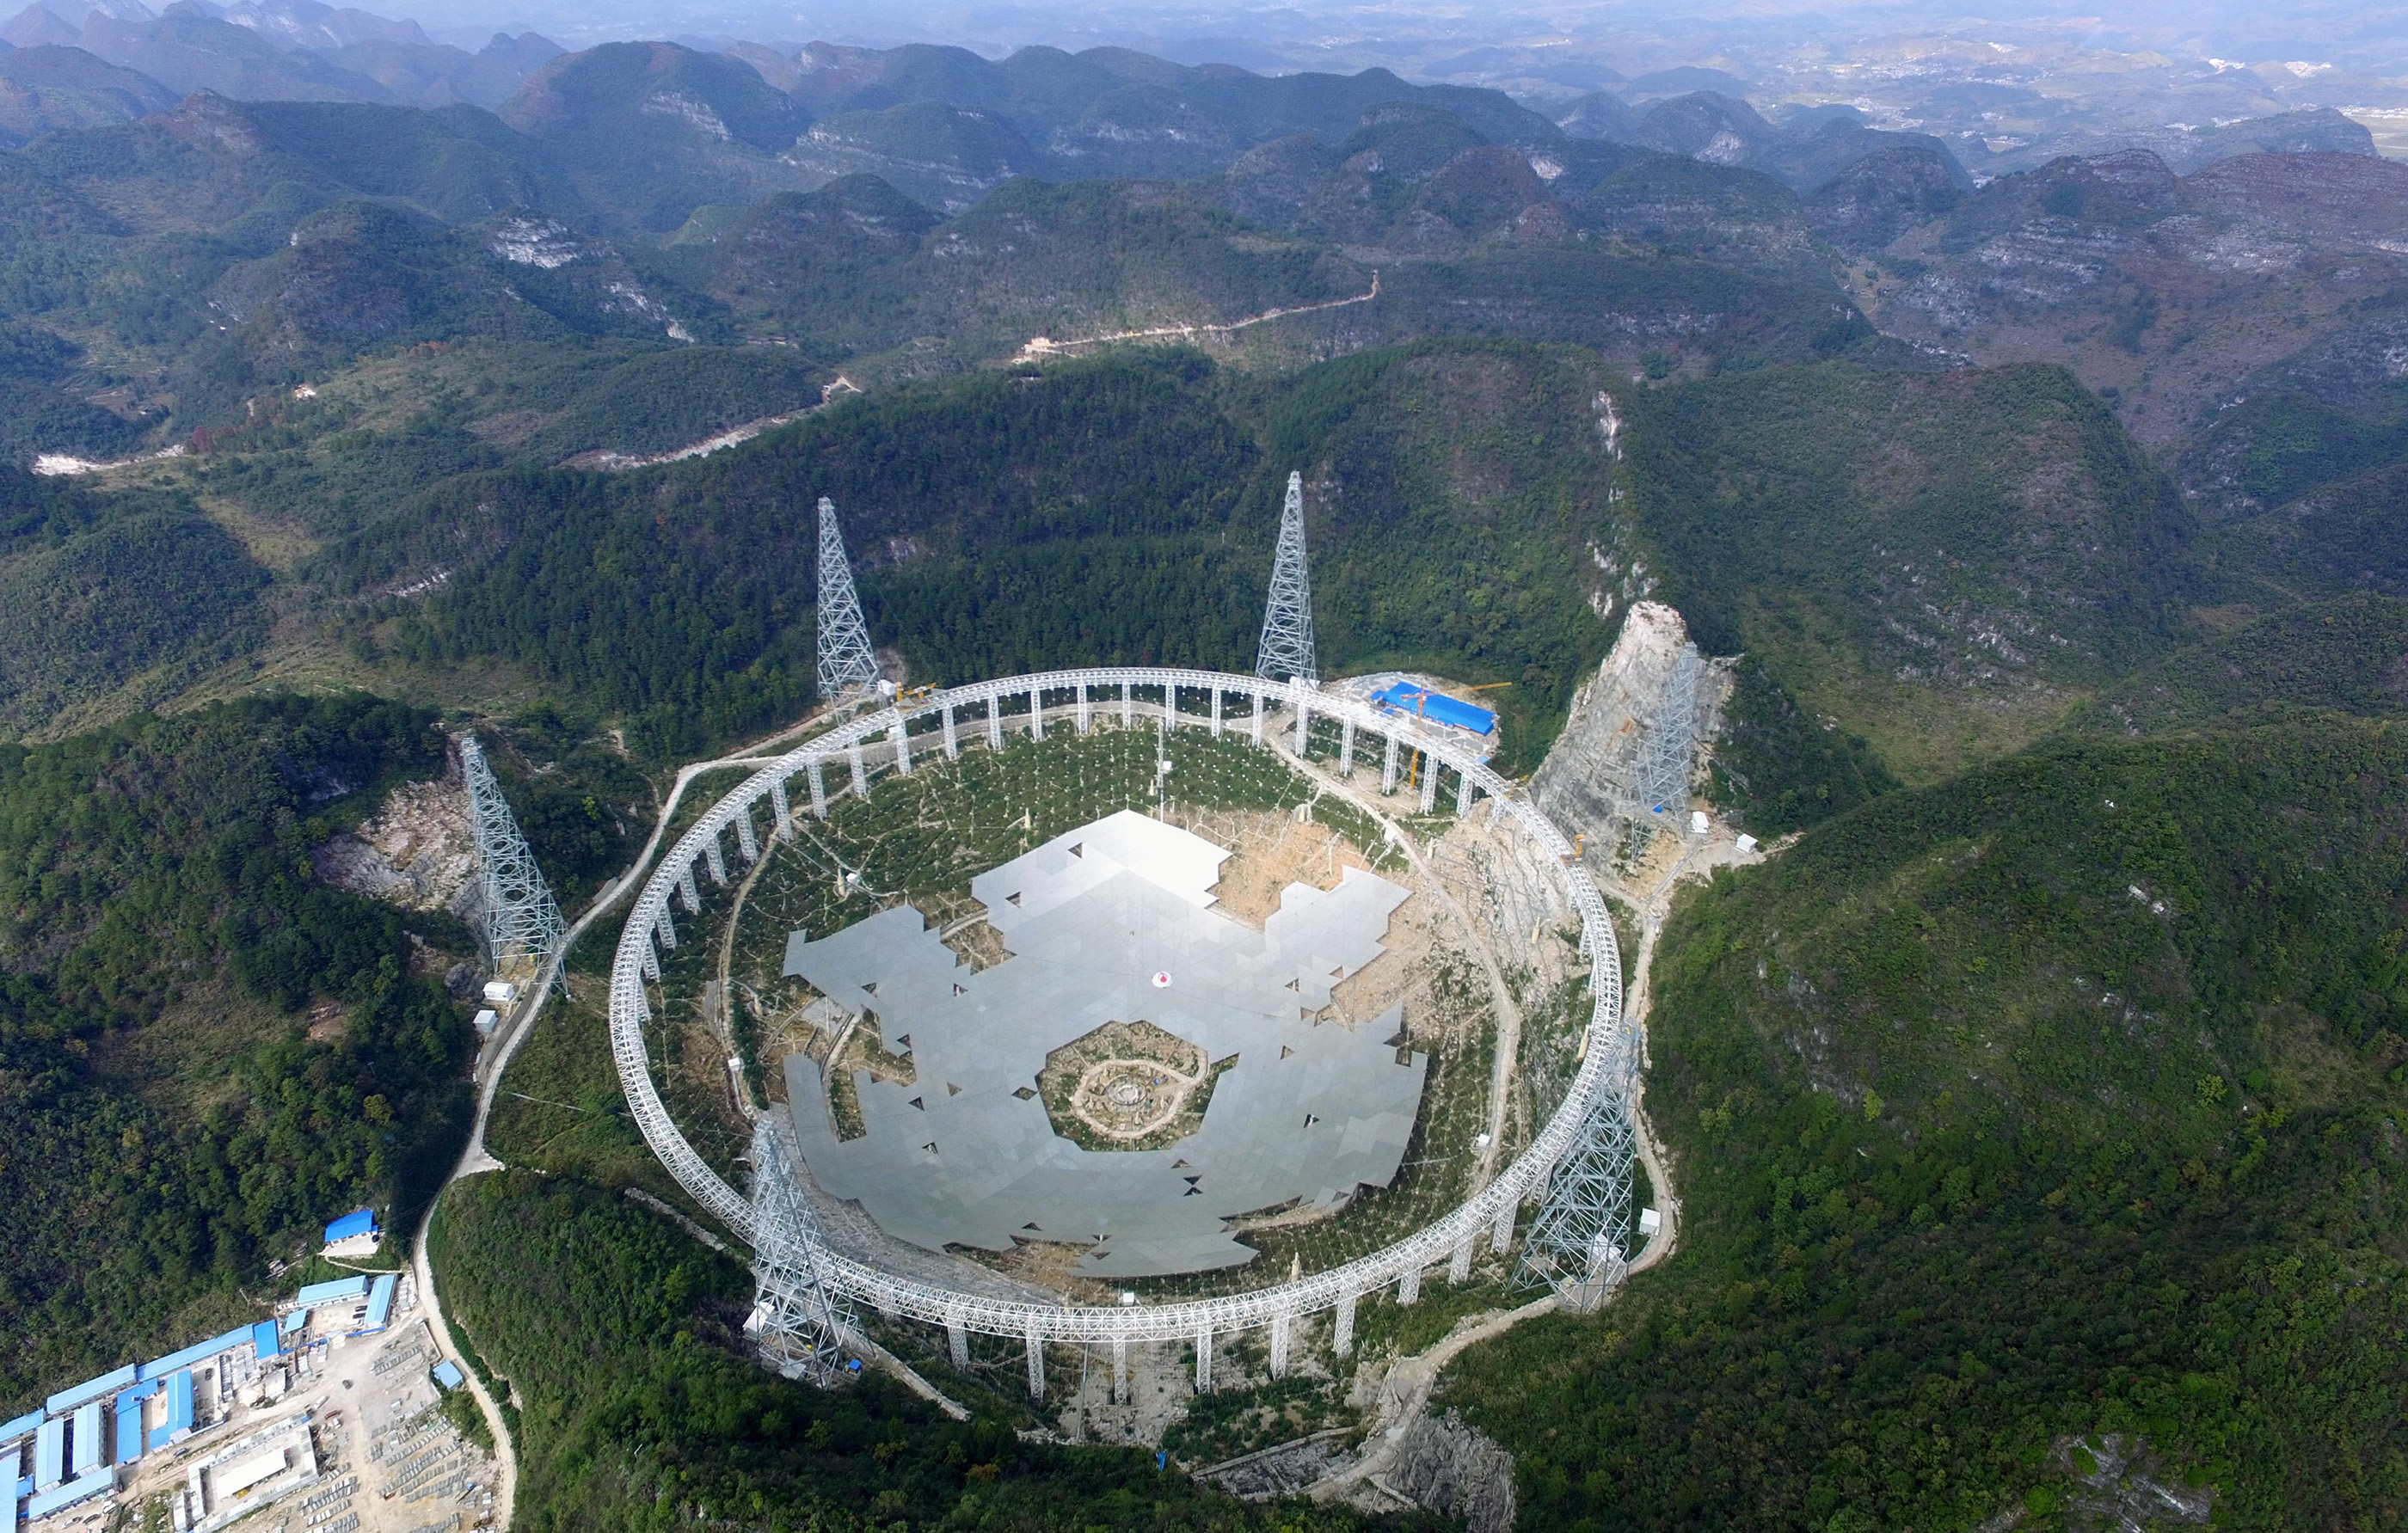 The Five hundred meter Aperture Spherical Telescope, currently under construction in Guizhou province, China.